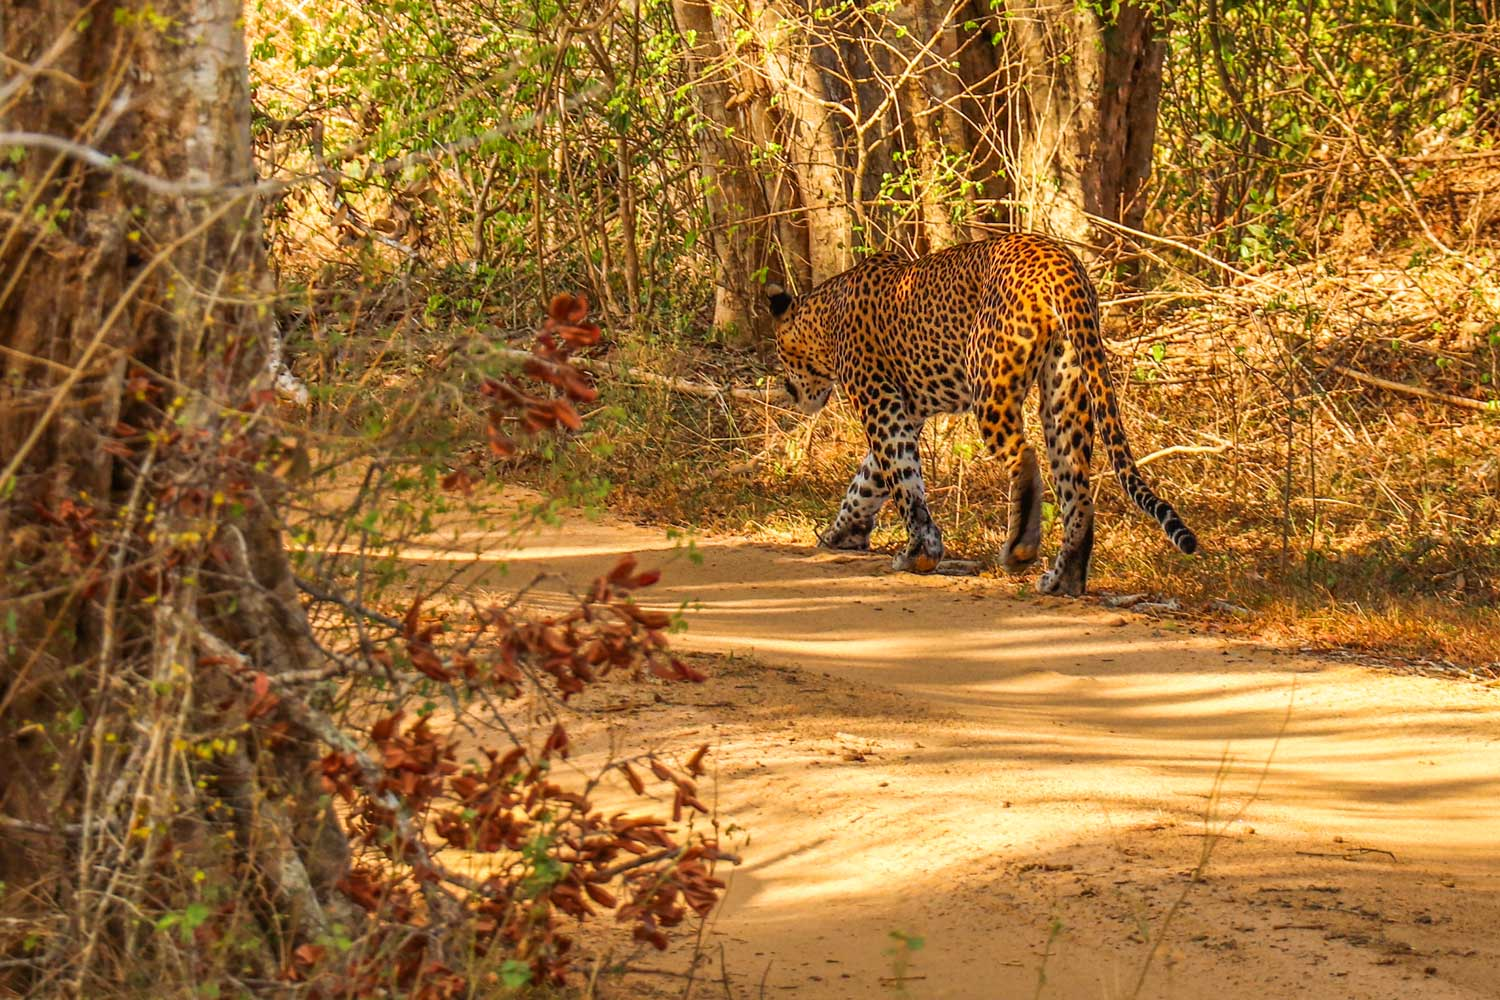 leopard i Yala National Park, Sri Lanka